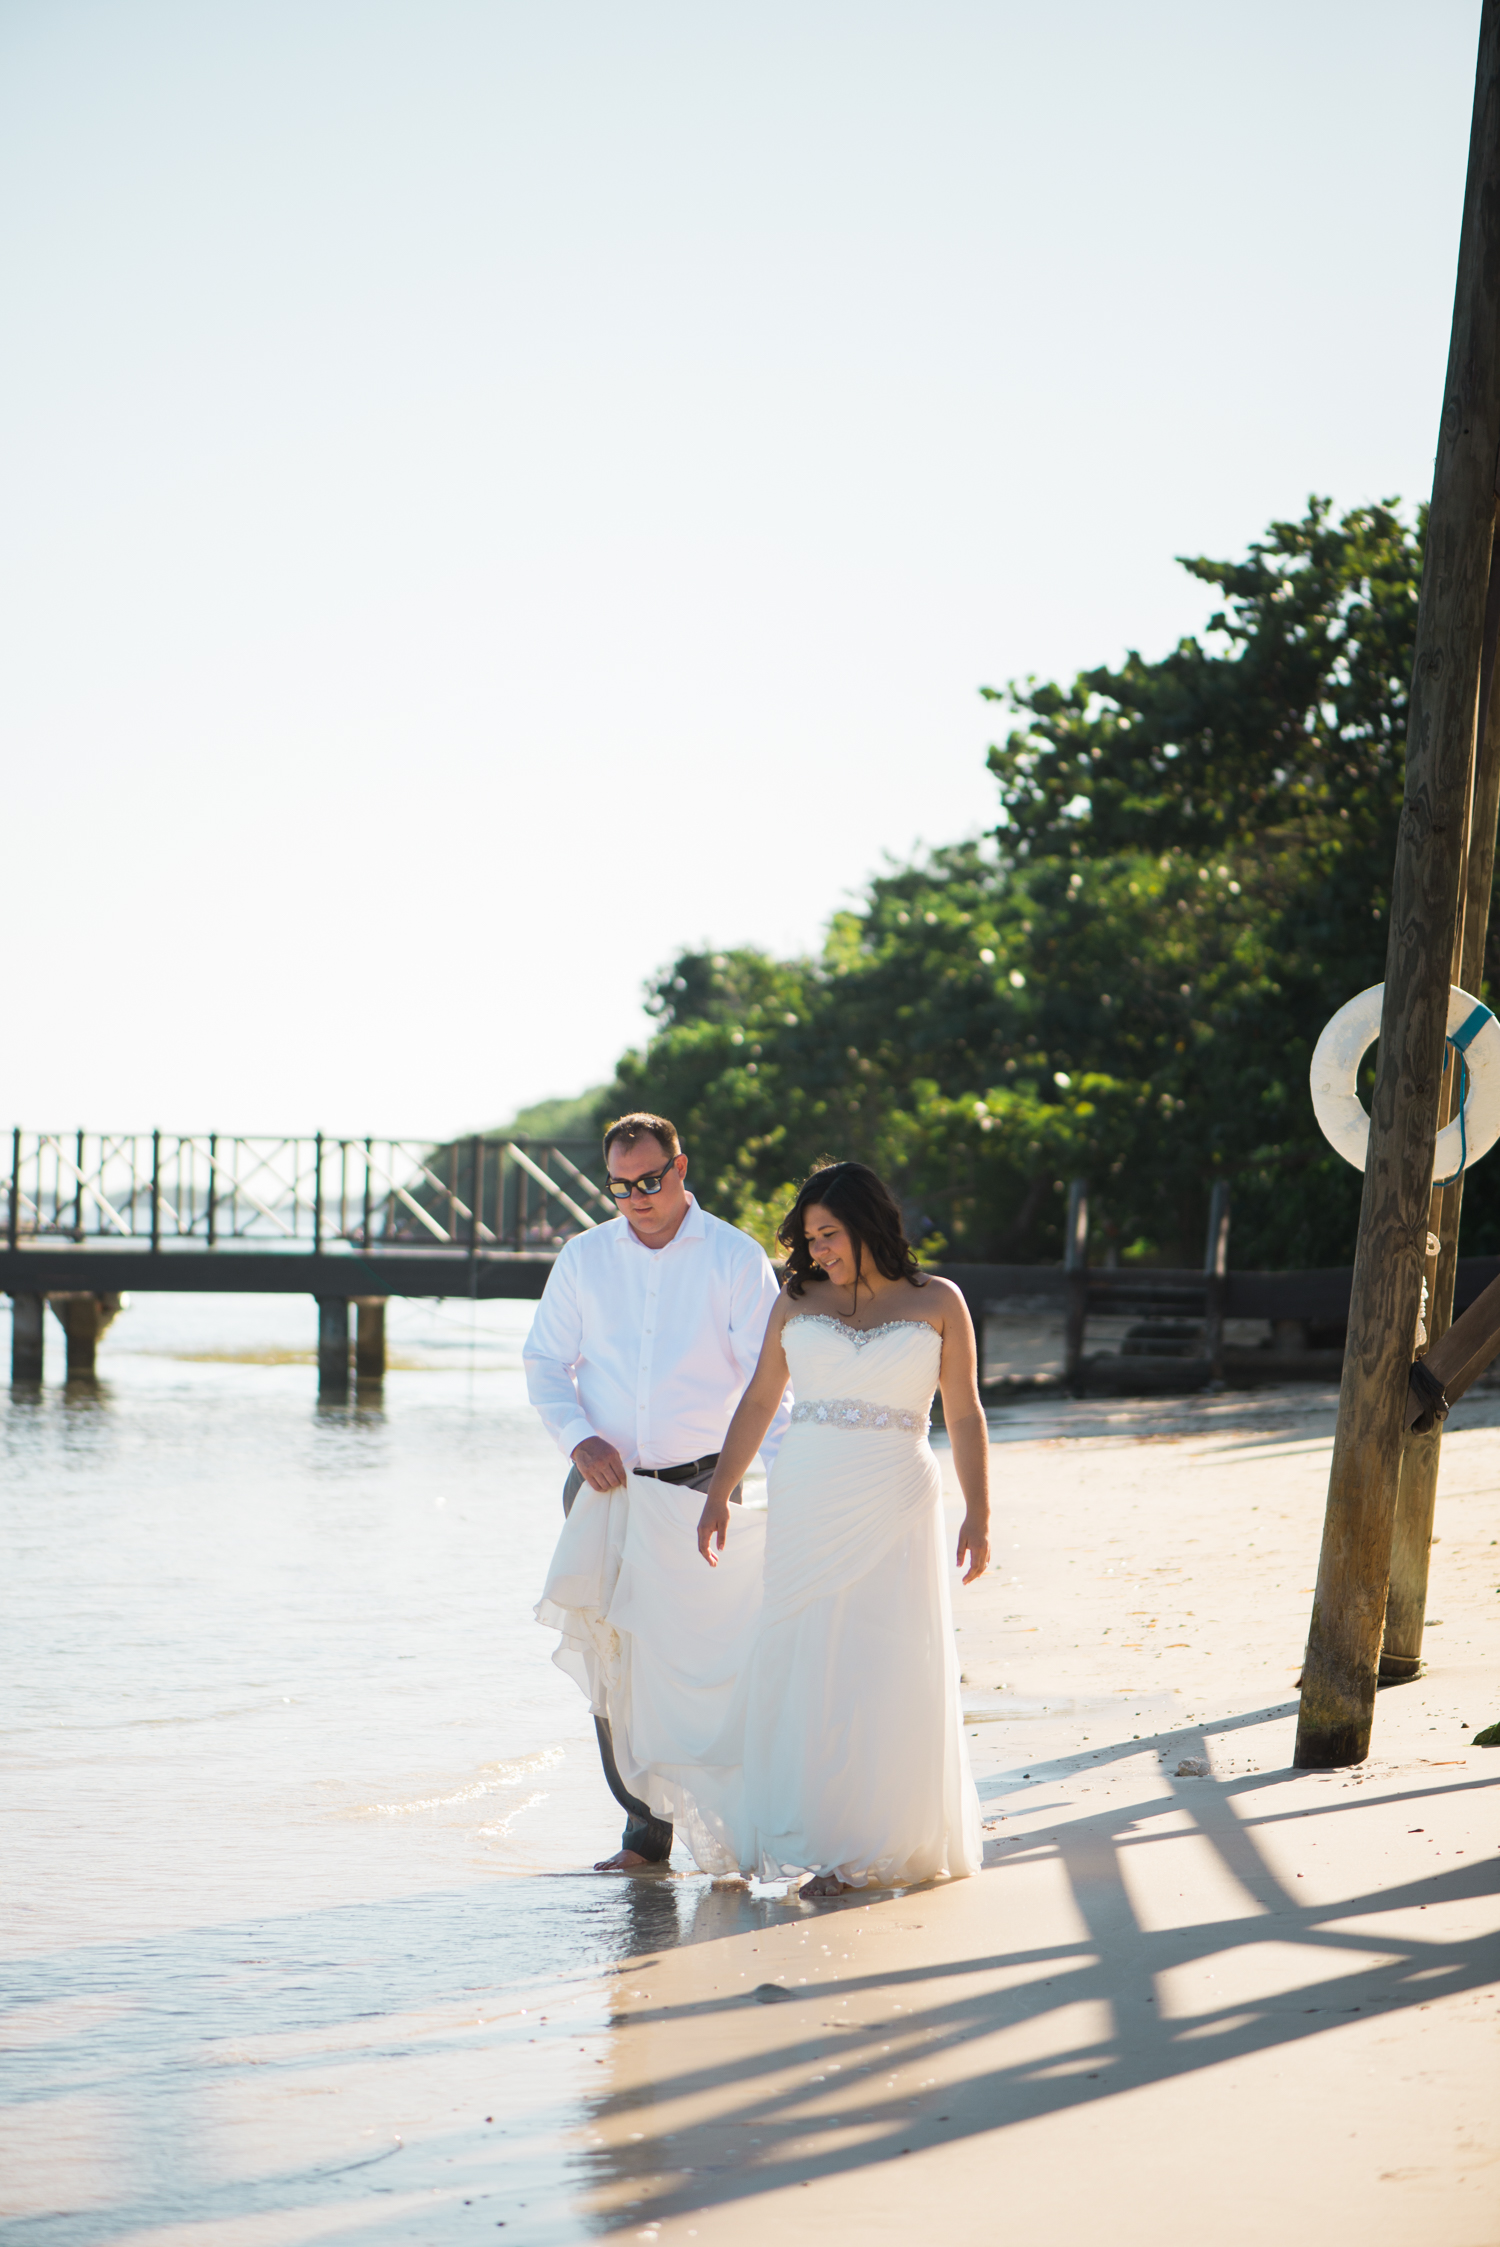 JadeandRyan-Montego-Bay-Jamaica-Wedding-Iberostar-Resort-Beach-86.jpg